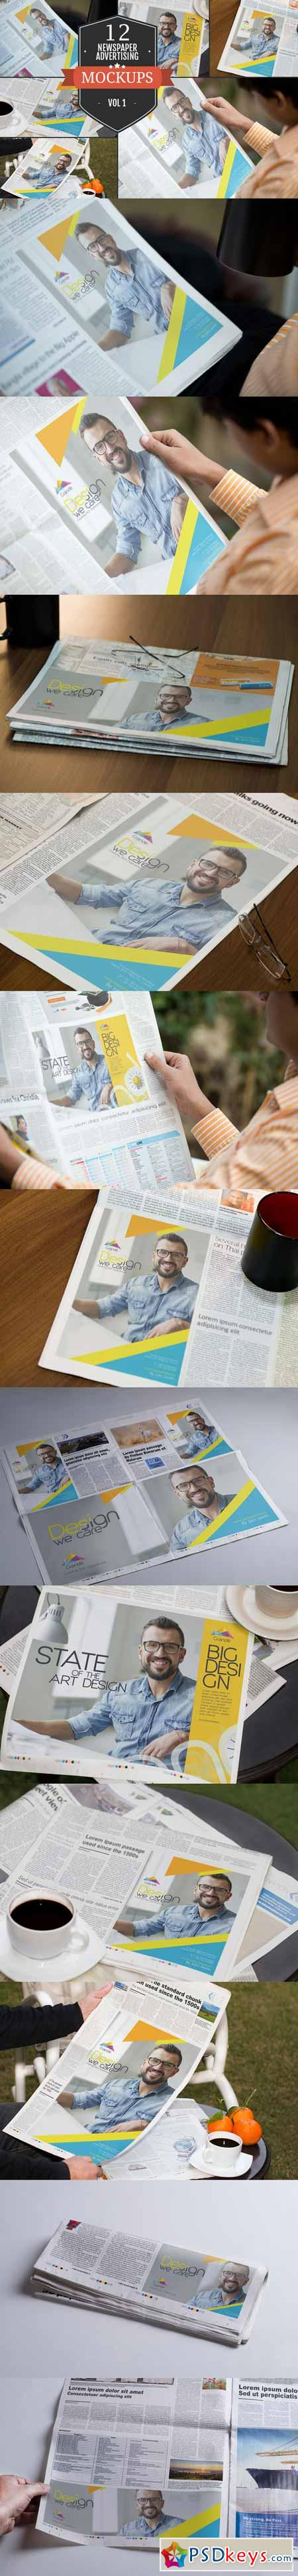 Newspaper Advertising Mockups Vol. 1 351465